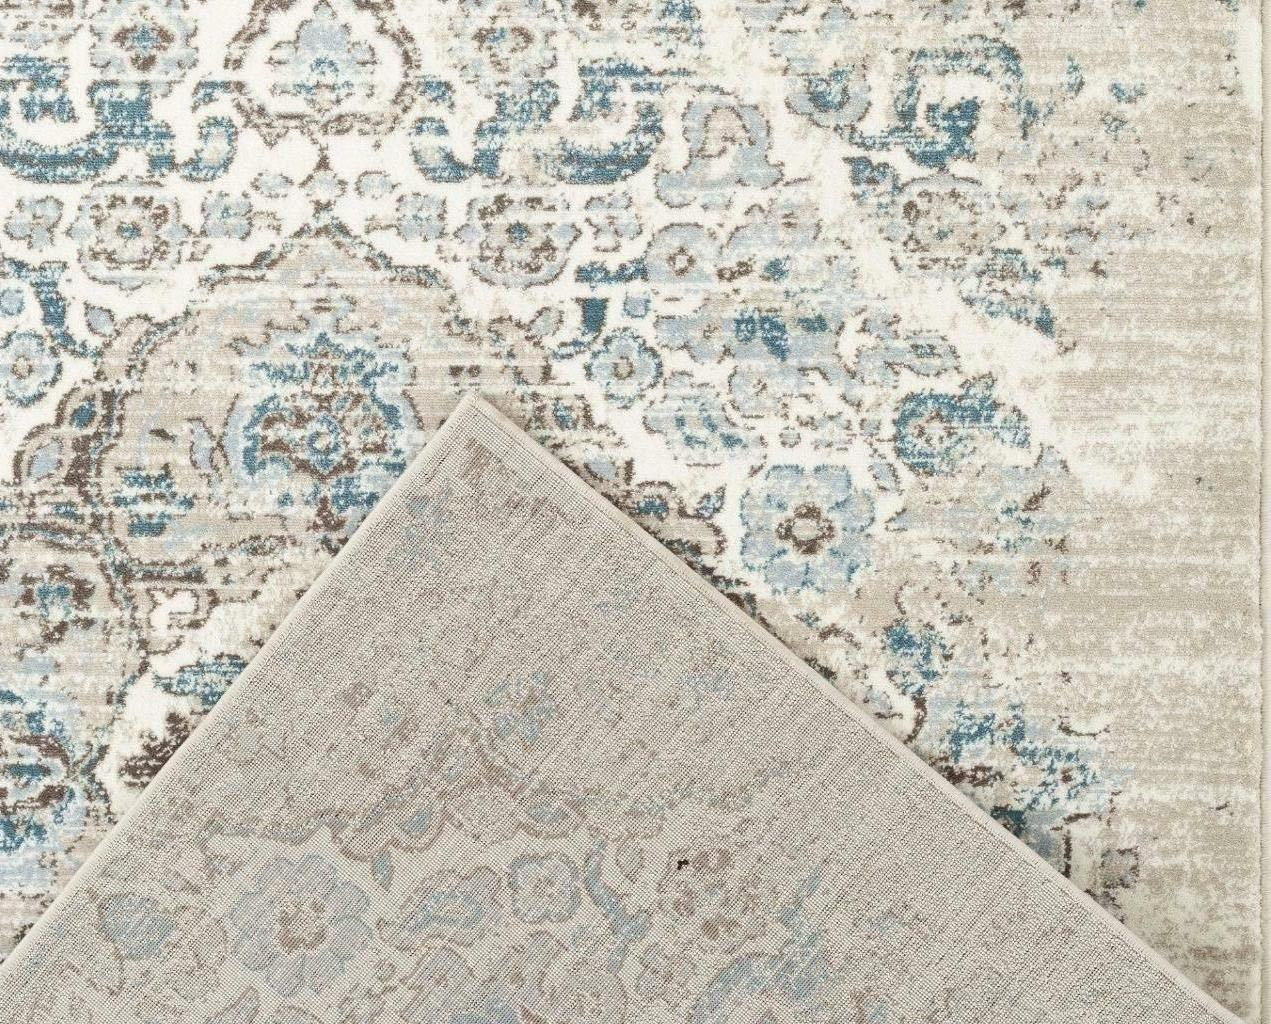 Persian Area Rugs Cream - 8' 11', Ivory